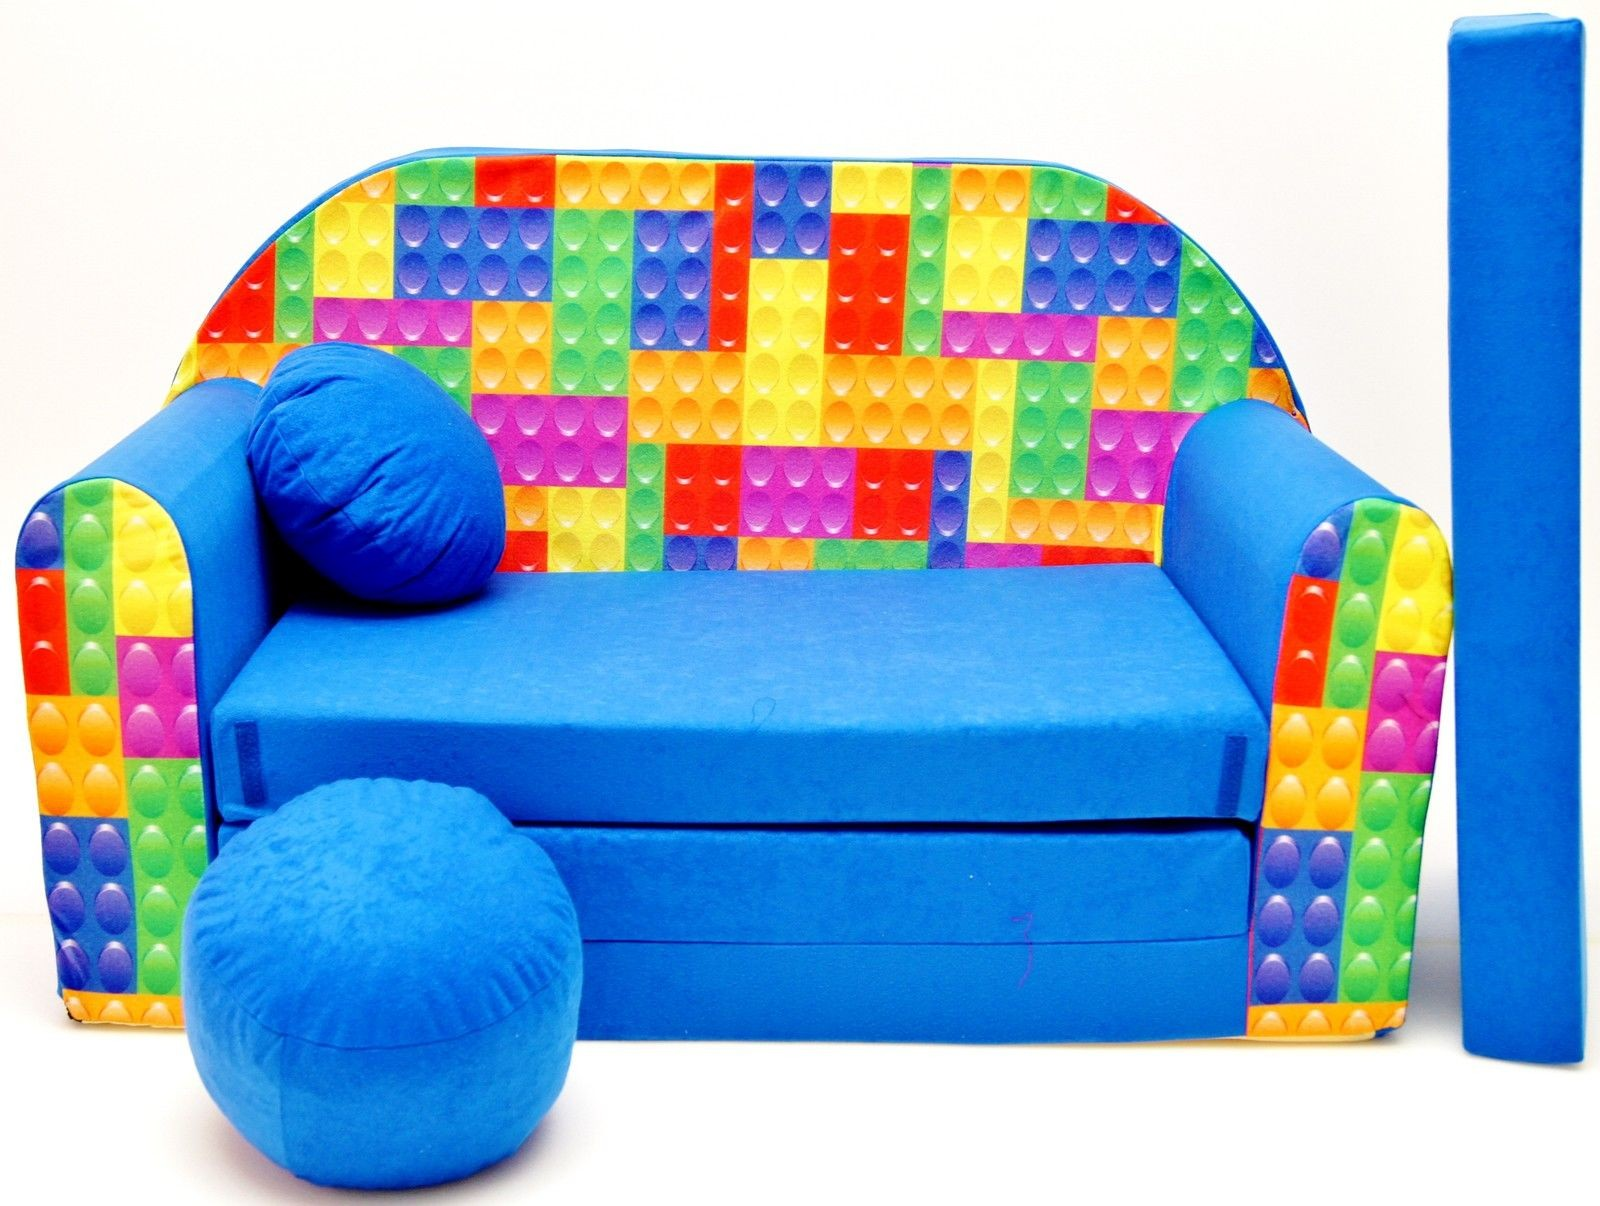 Baby sofa Bed Incredible Childrens sofa Bed Type W Fold Out sofa Foam Bed for Children Décor